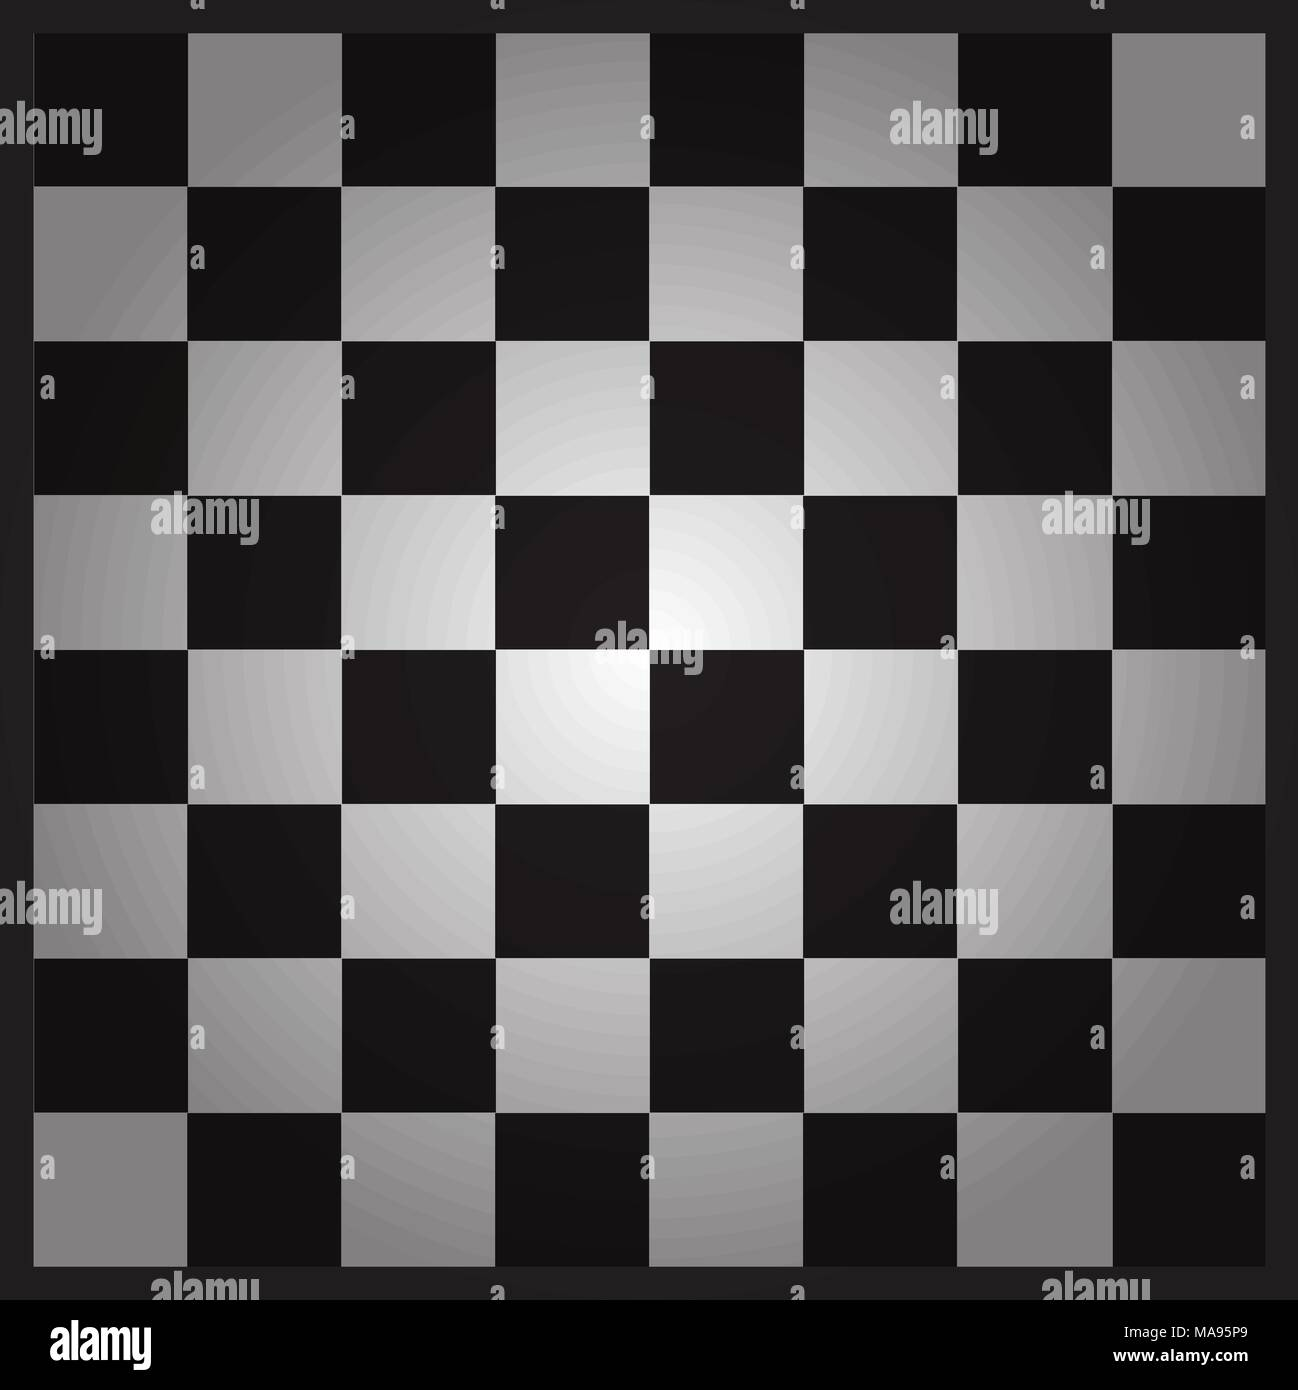 Empty Chess Board Ready Layout For Your Design Stock Vector Image Art Alamy